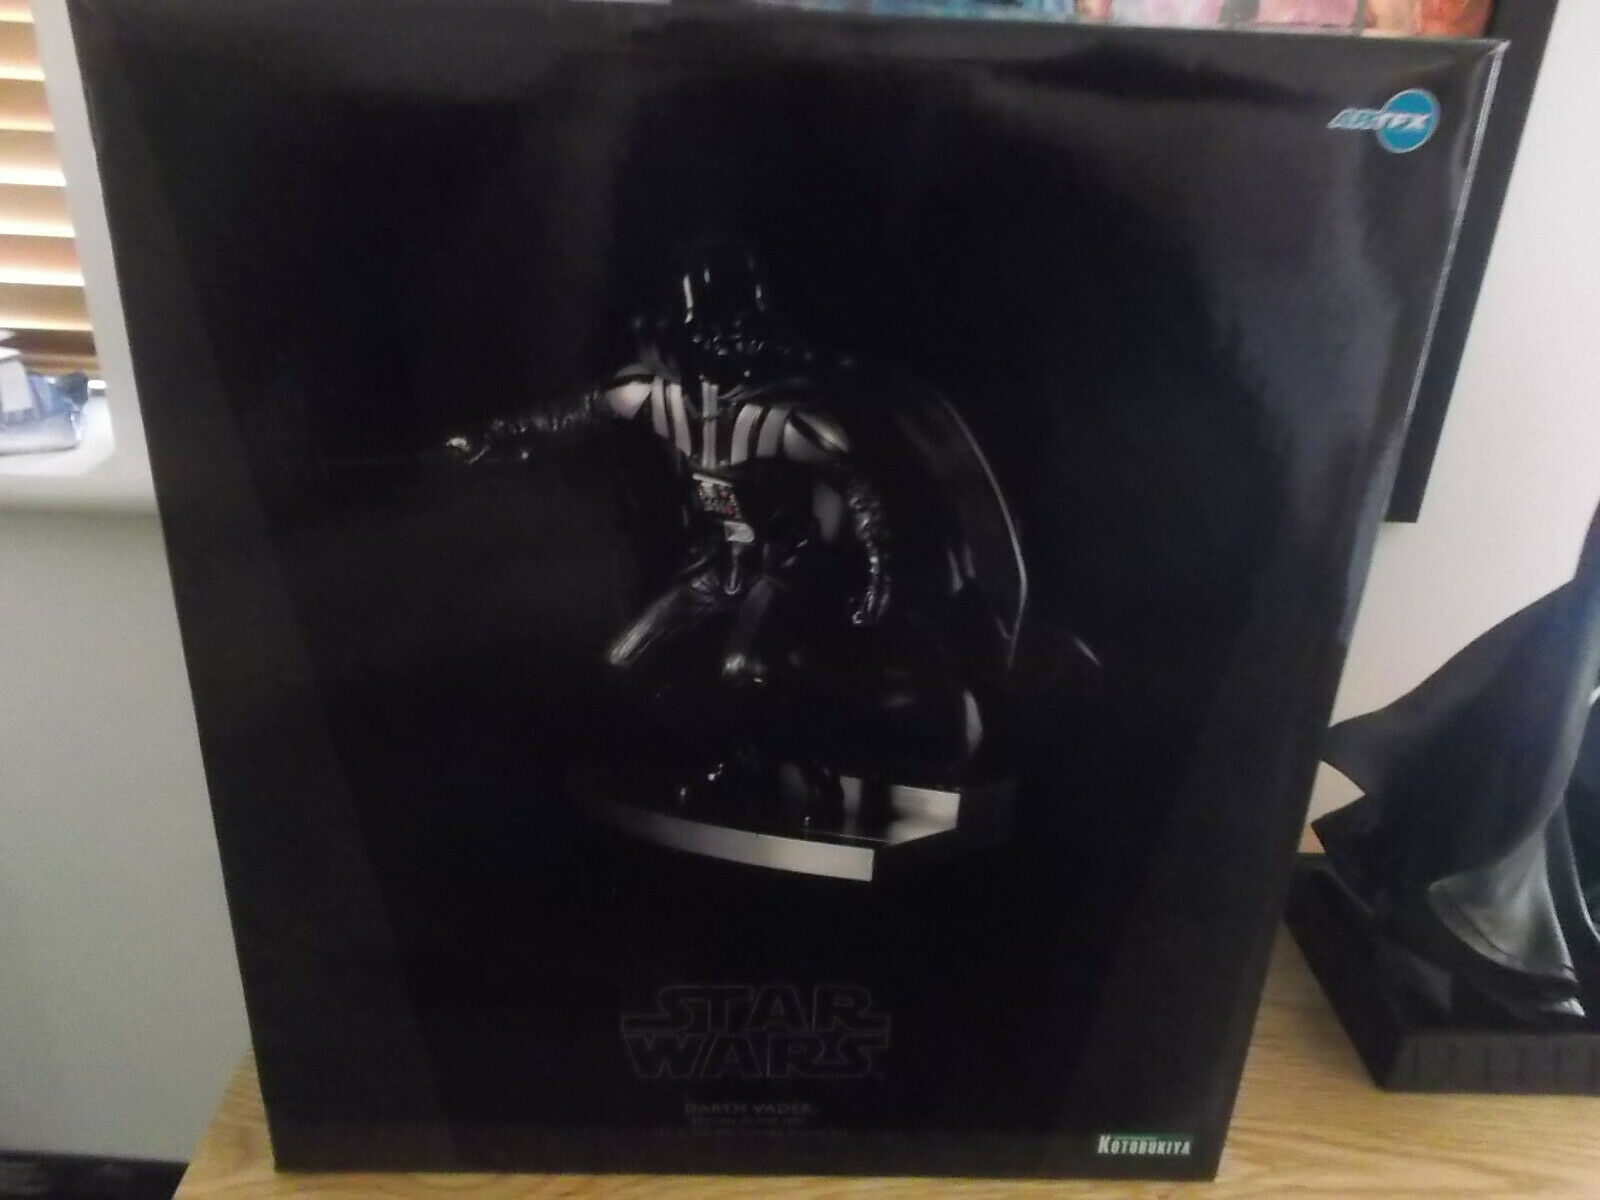 Kotobukiya 1 7 Scale Star Wars Artfx Darth Vader Figure Statue